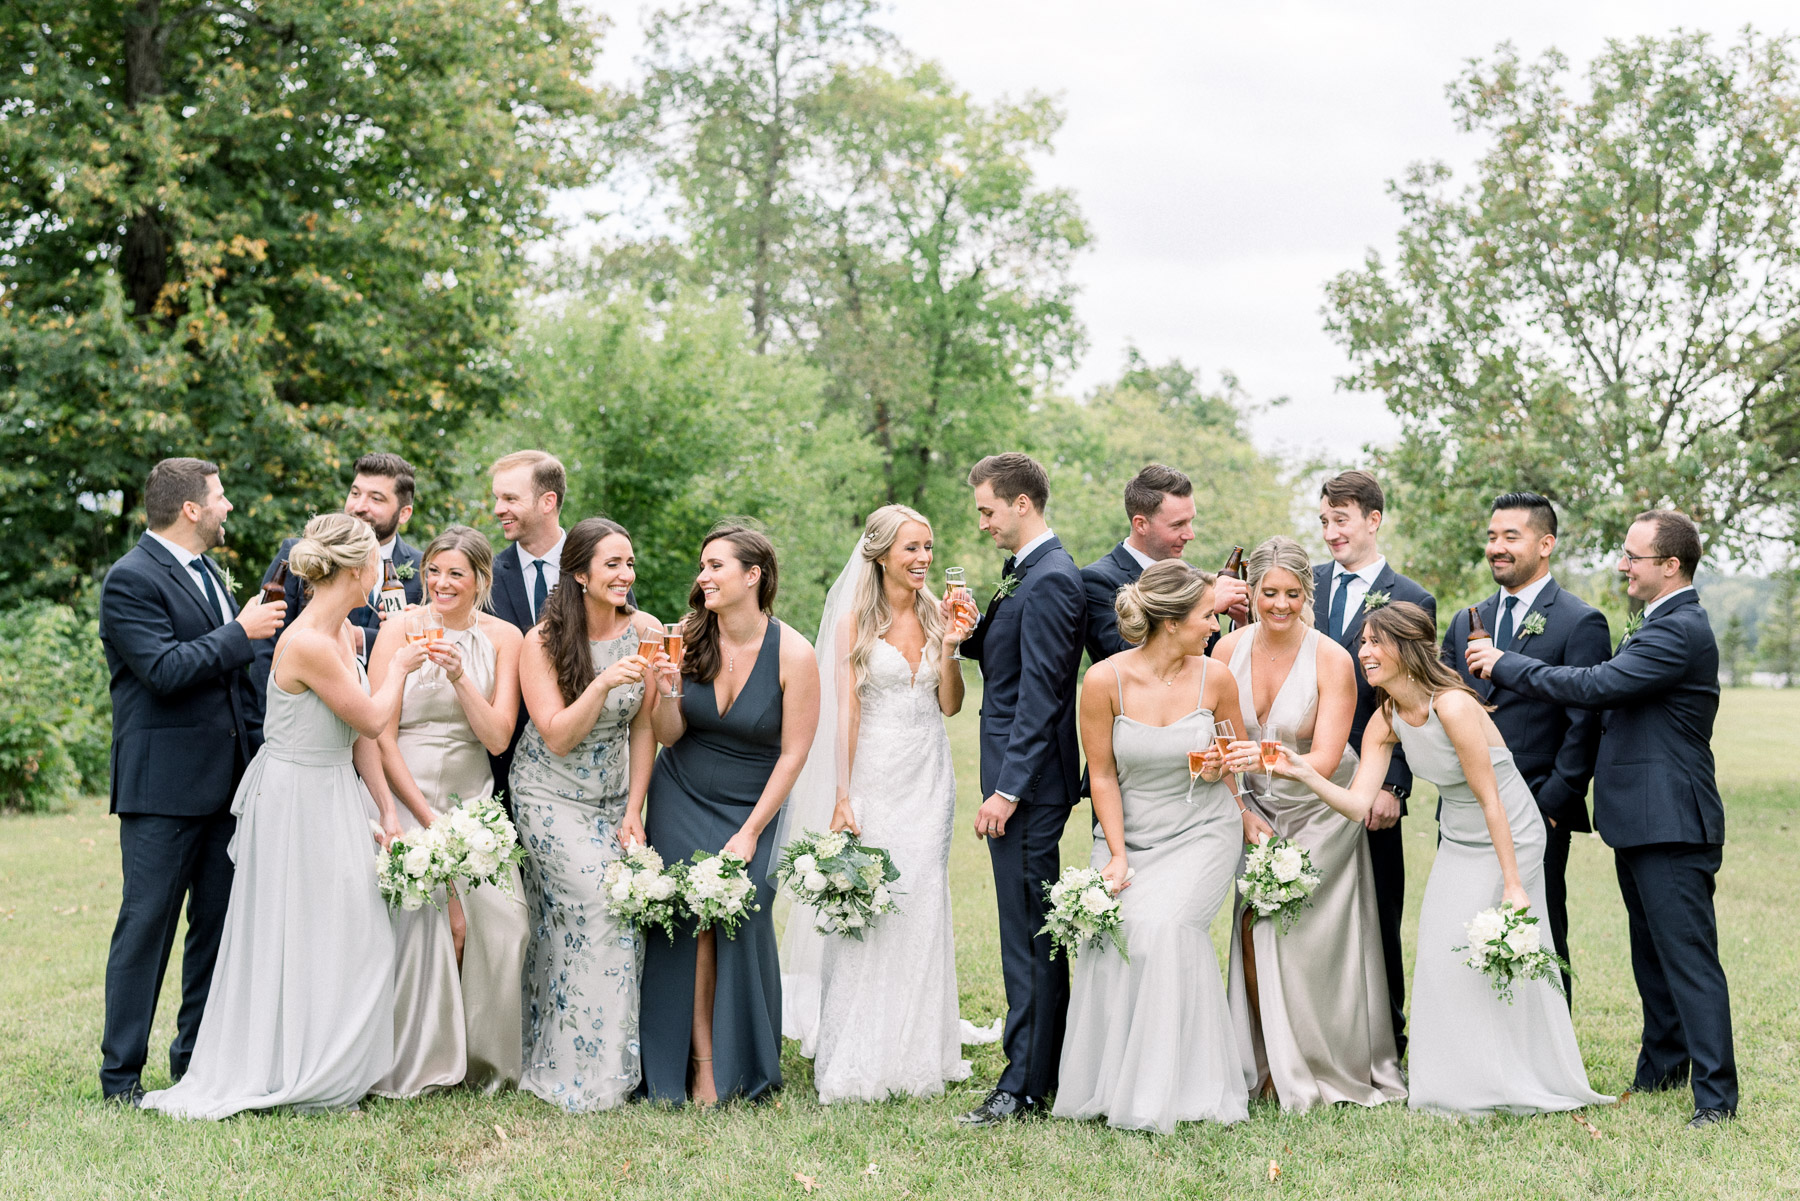 Private Island Upstate NY Wedding by Michelle Lange Photography-31.jpg